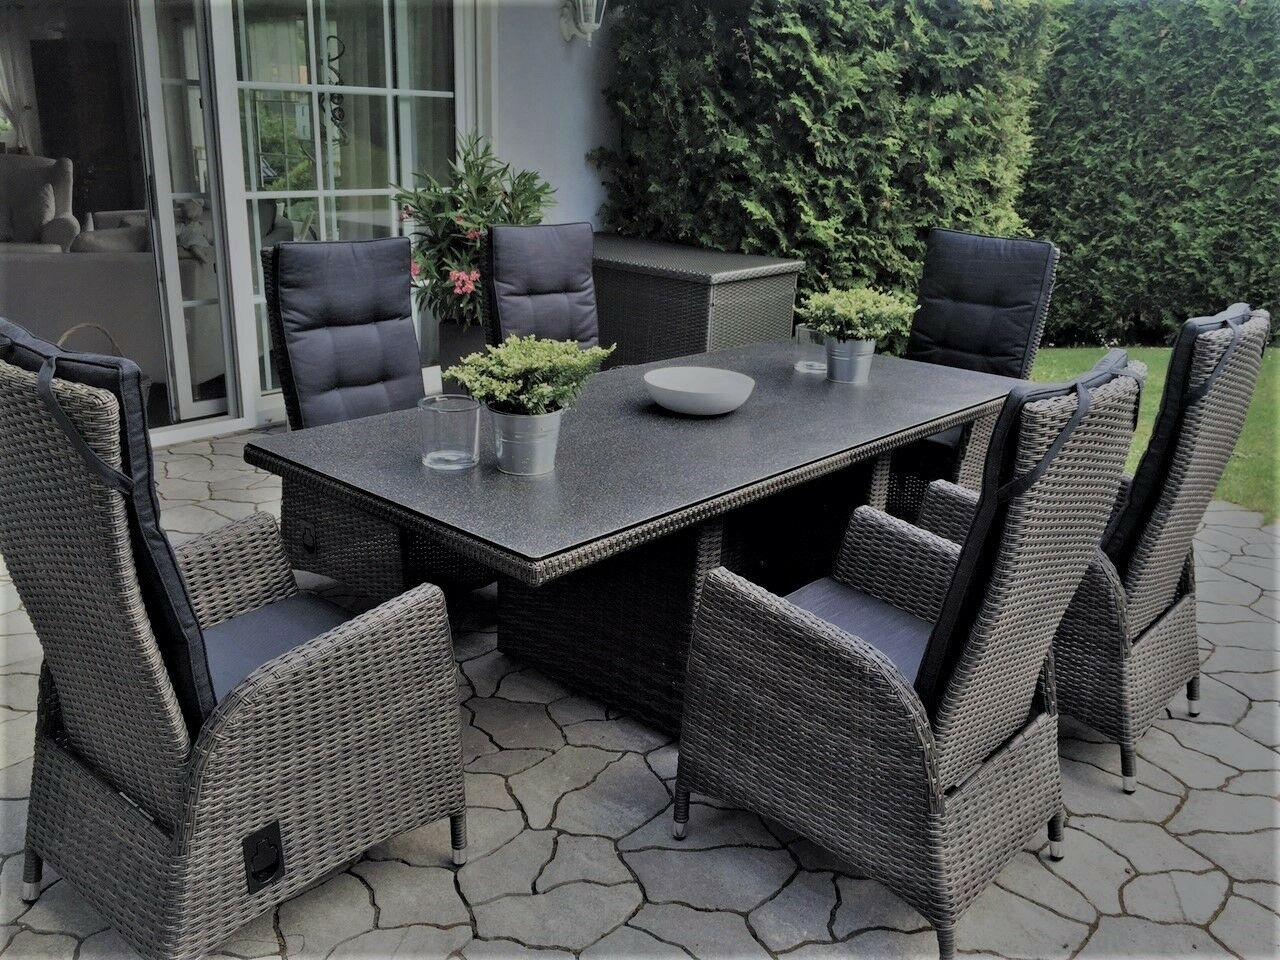 gartengarnitur polyrattan sitzgruppe gartenset gartenm bel verstellbar neu eur. Black Bedroom Furniture Sets. Home Design Ideas